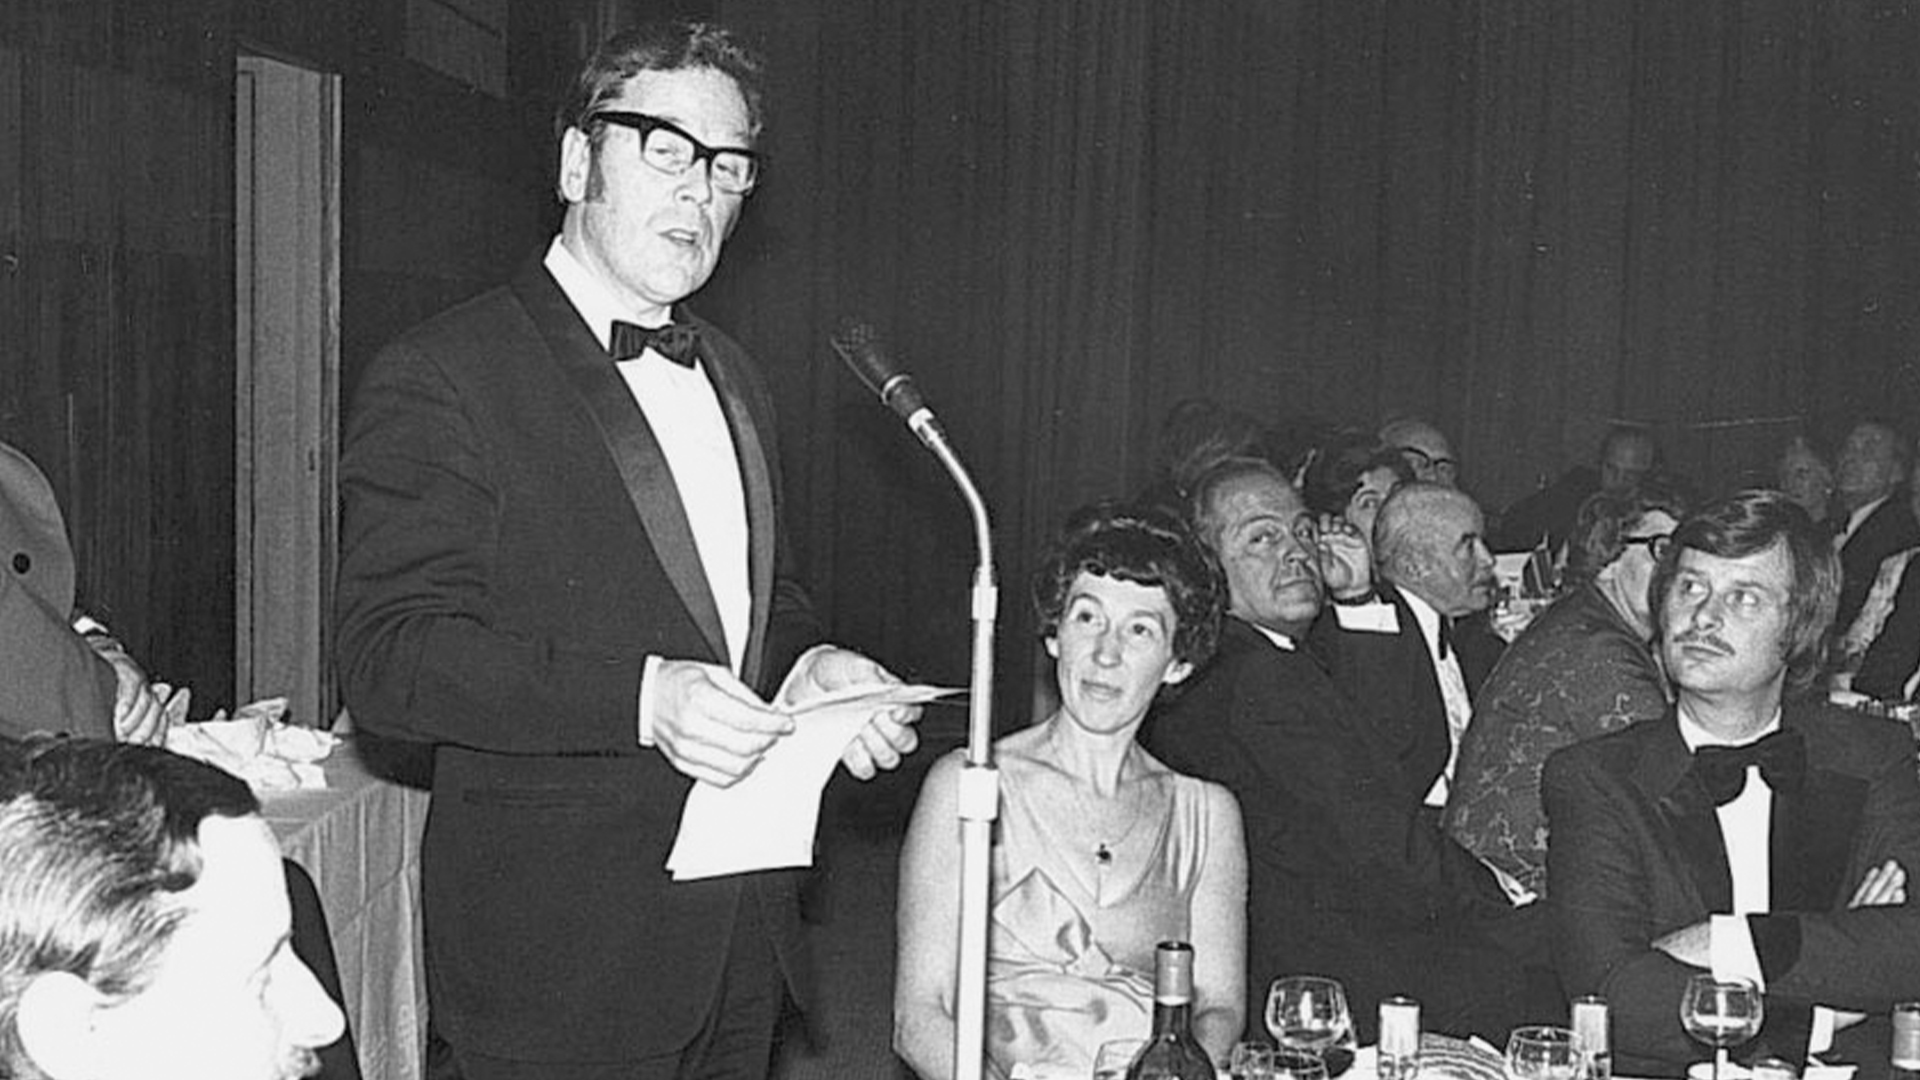 Laurie Foster welcomes guests at the Annual Dinner in 1976